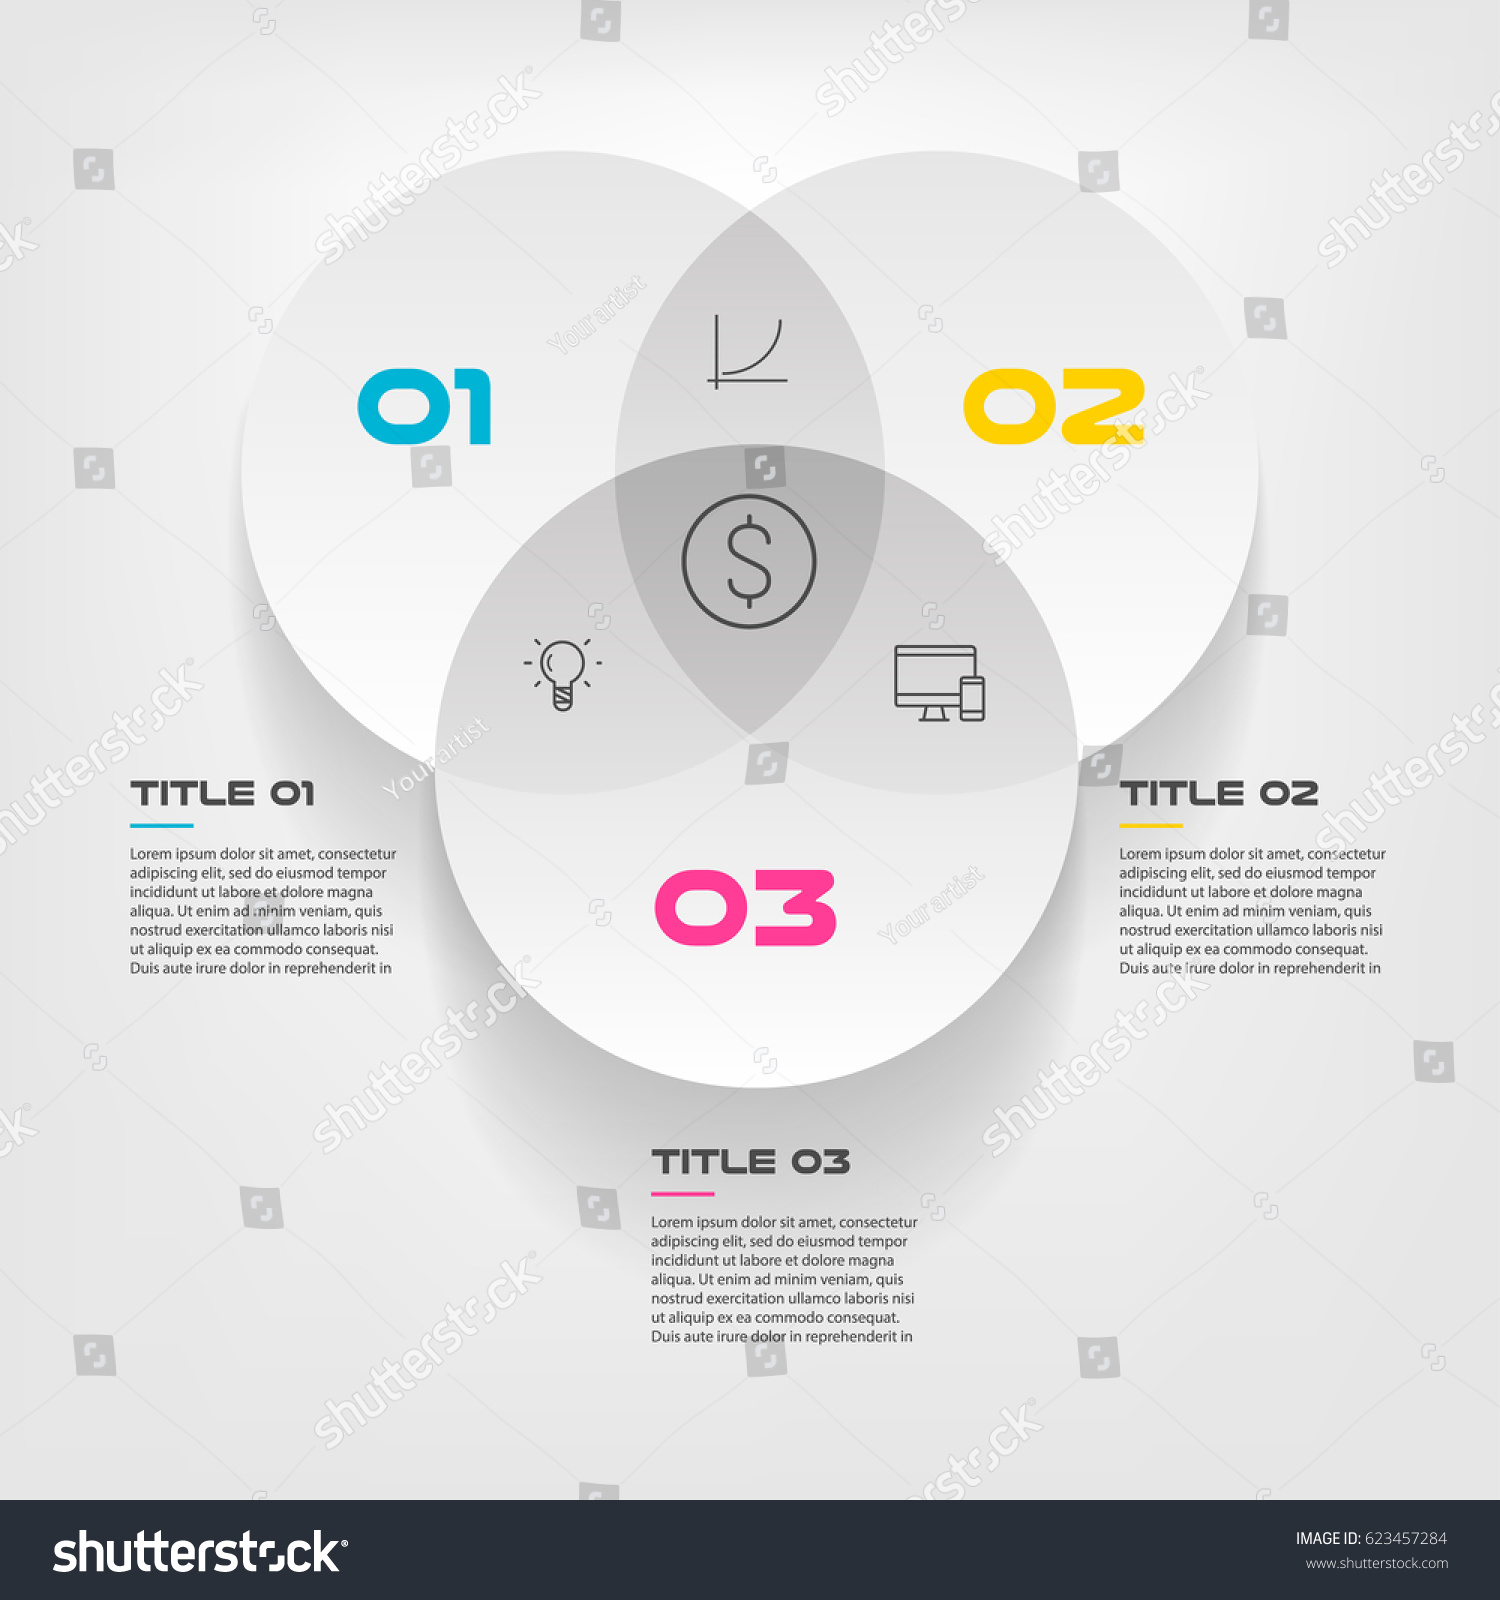 Circle venn diagram cat 5 e wiring diagram cat5 wire diagram venn diagram infographics three circle design stock vector stock vector venn diagram infographics for three circle design vector and marketing can be used pooptronica